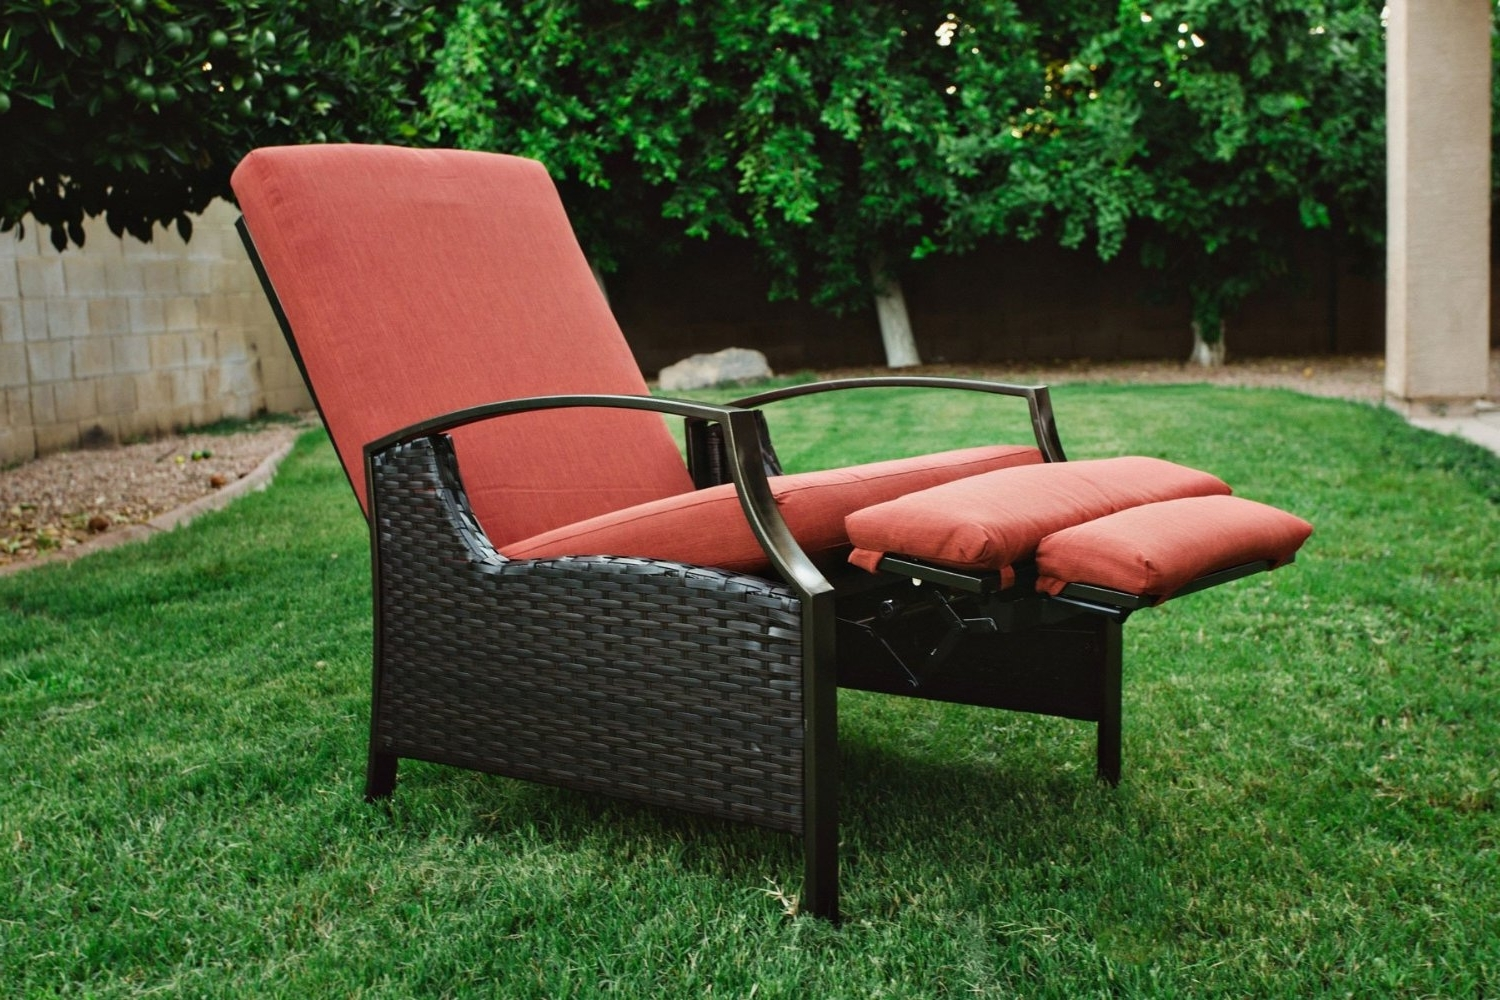 Chaise Lounge Reclining Chairs For Outdoor Throughout 2018 Outdoor : Wayfair Chaise Lounge Chaise Lounge Sofa Most (View 13 of 15)